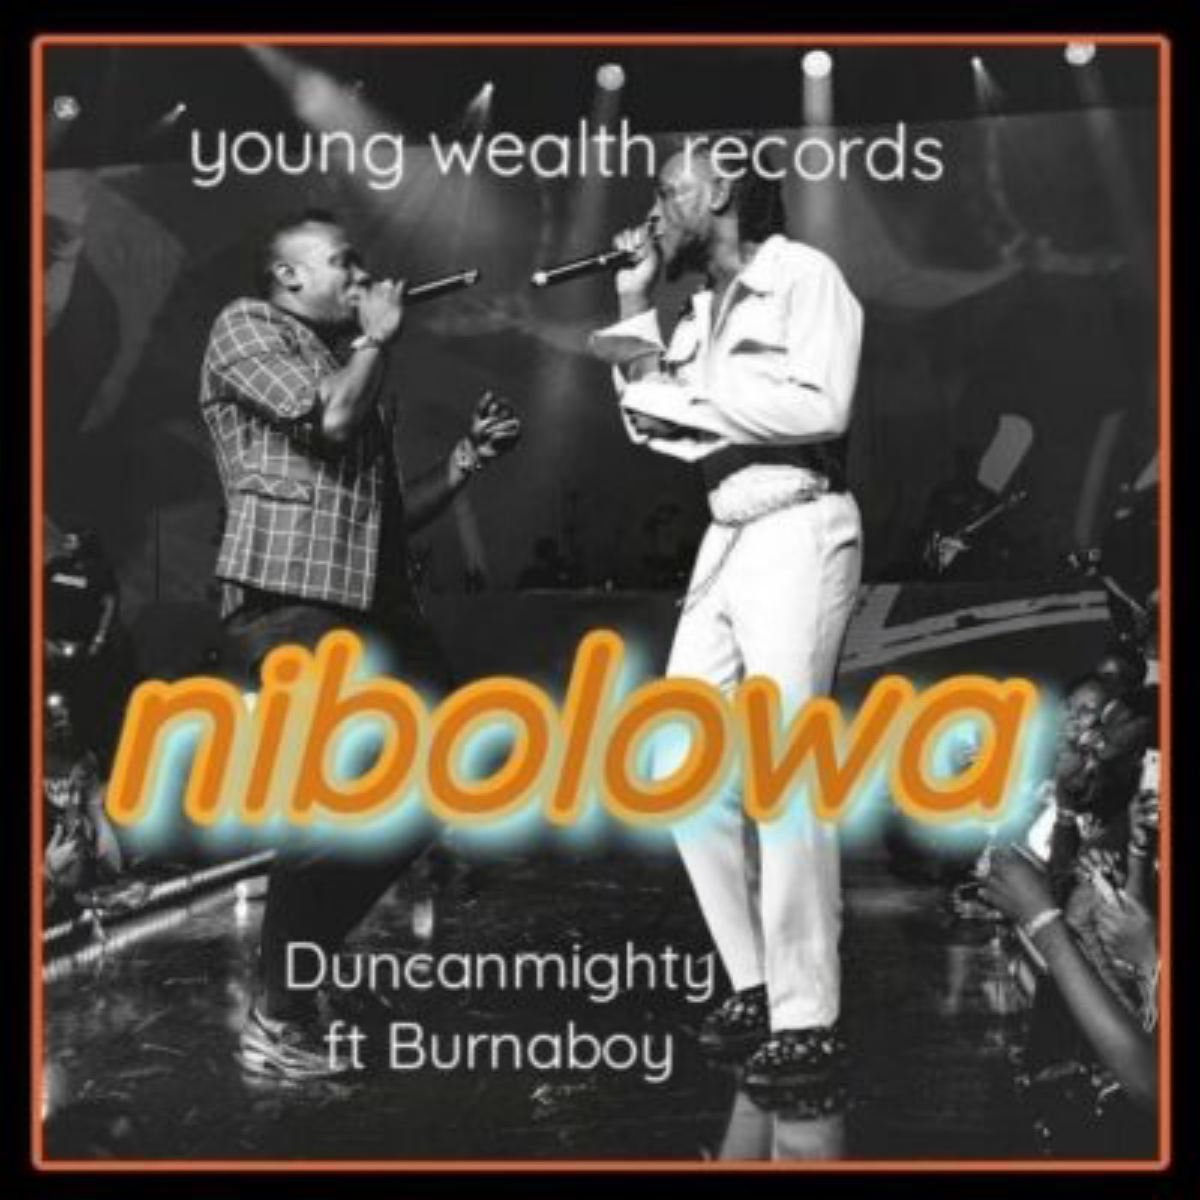 Duncan Mighty Nibolowa Ft. Burna Boy mp3 download